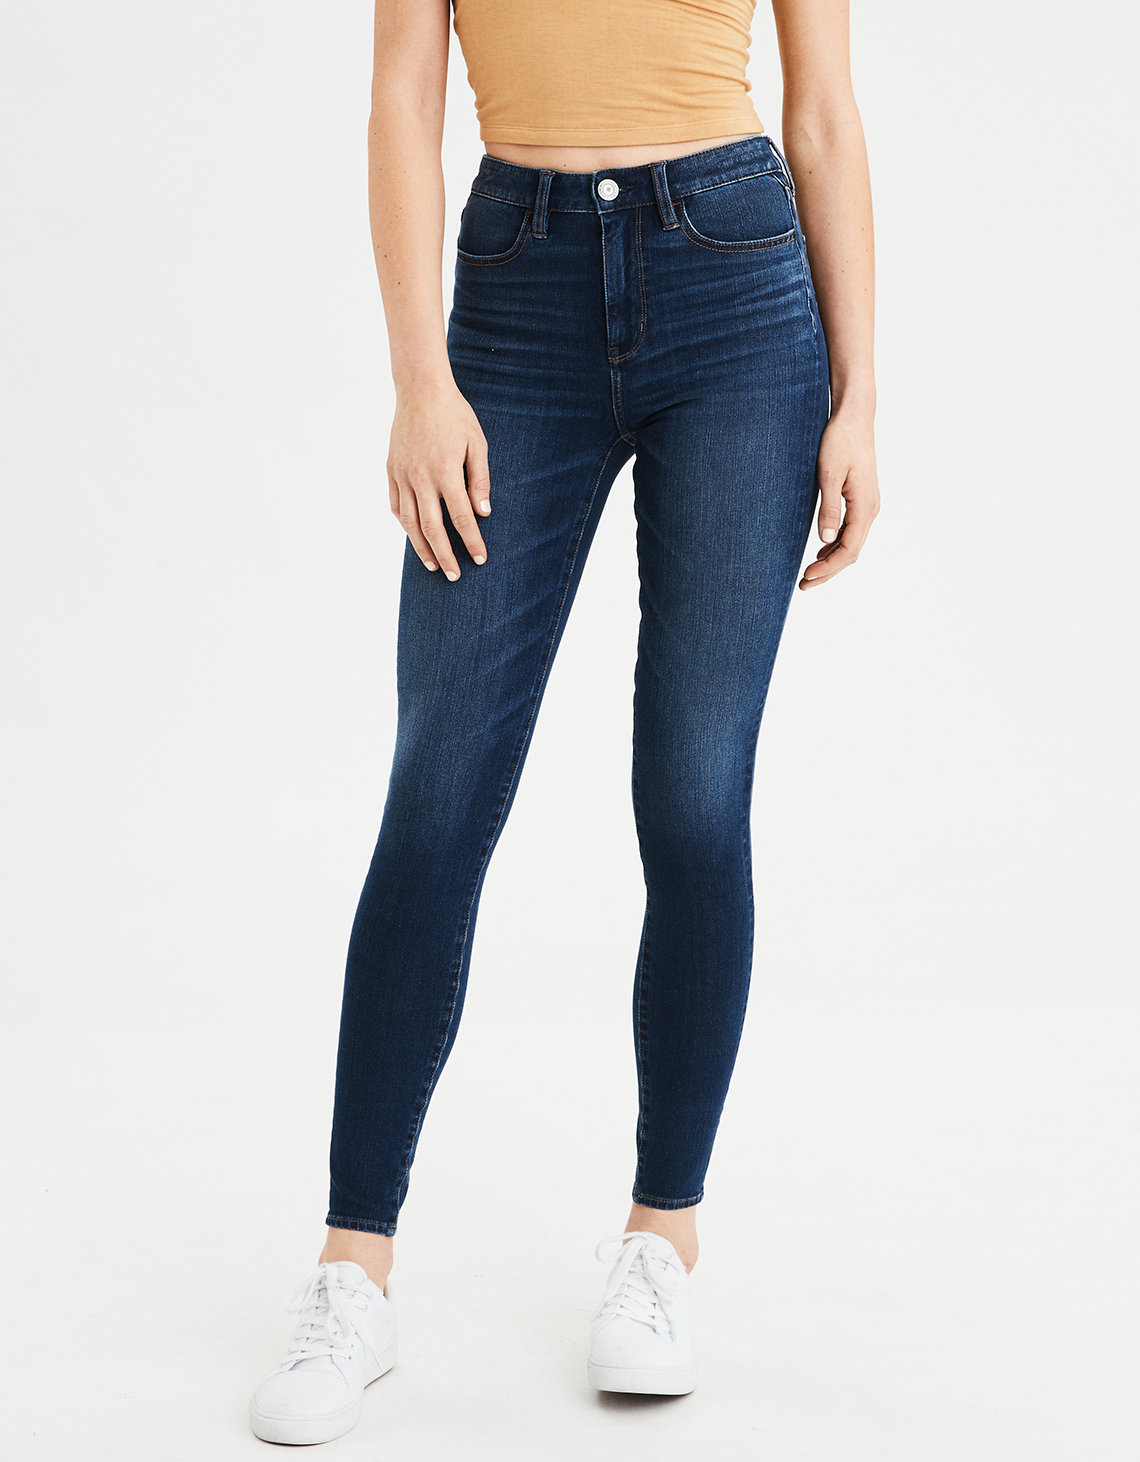 The Dream Jean Super High-Waisted Jegging